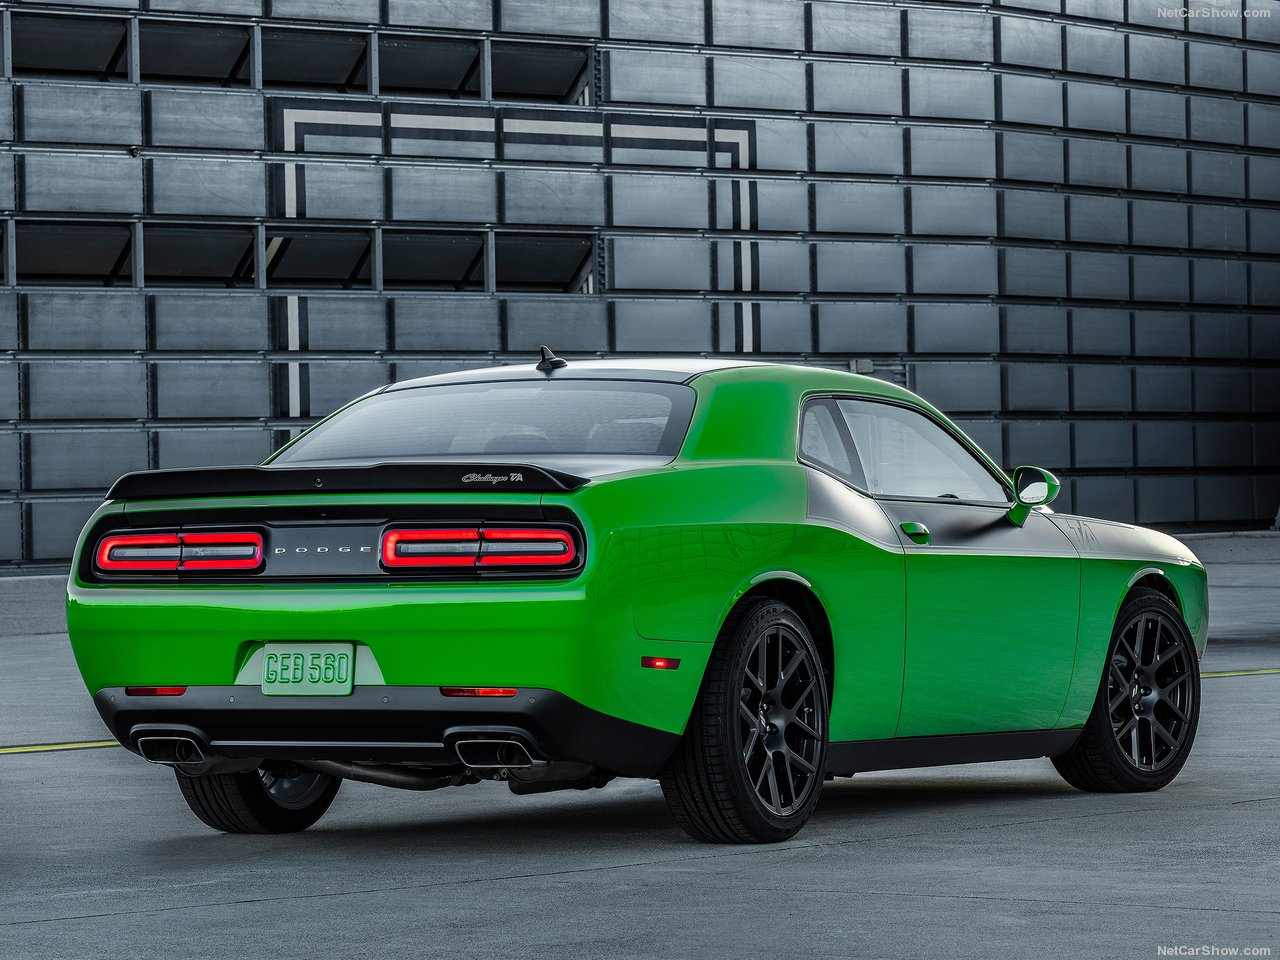 If the new green go looked like this ad from dodge i would have bought one for sure alas it does not look like this in person